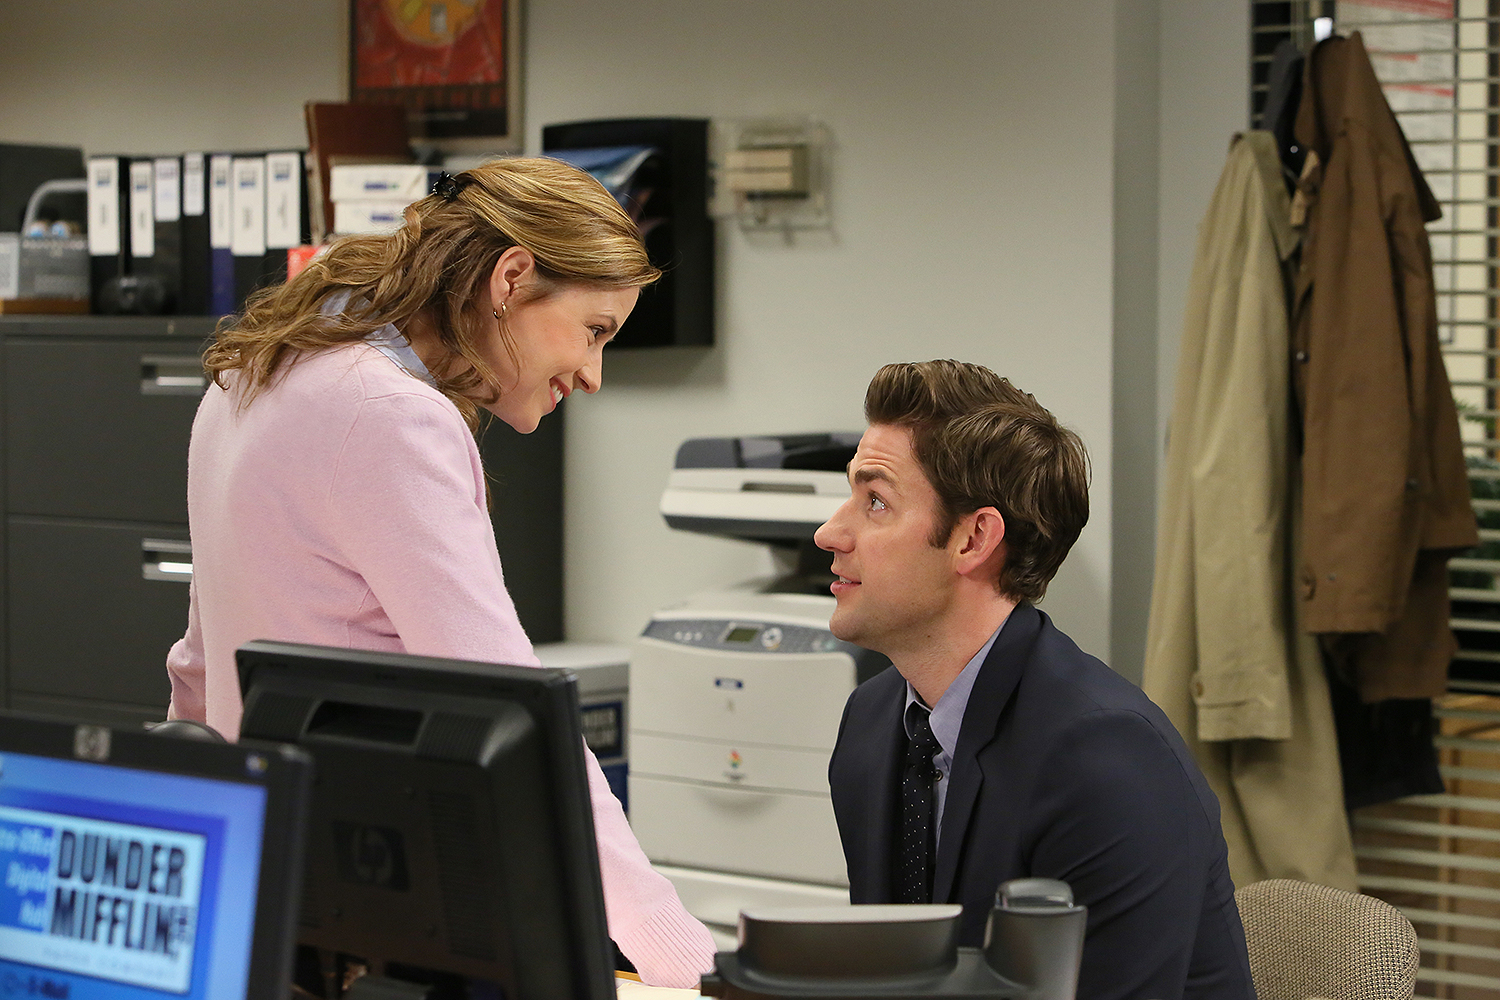 Pam and Jim, The Office